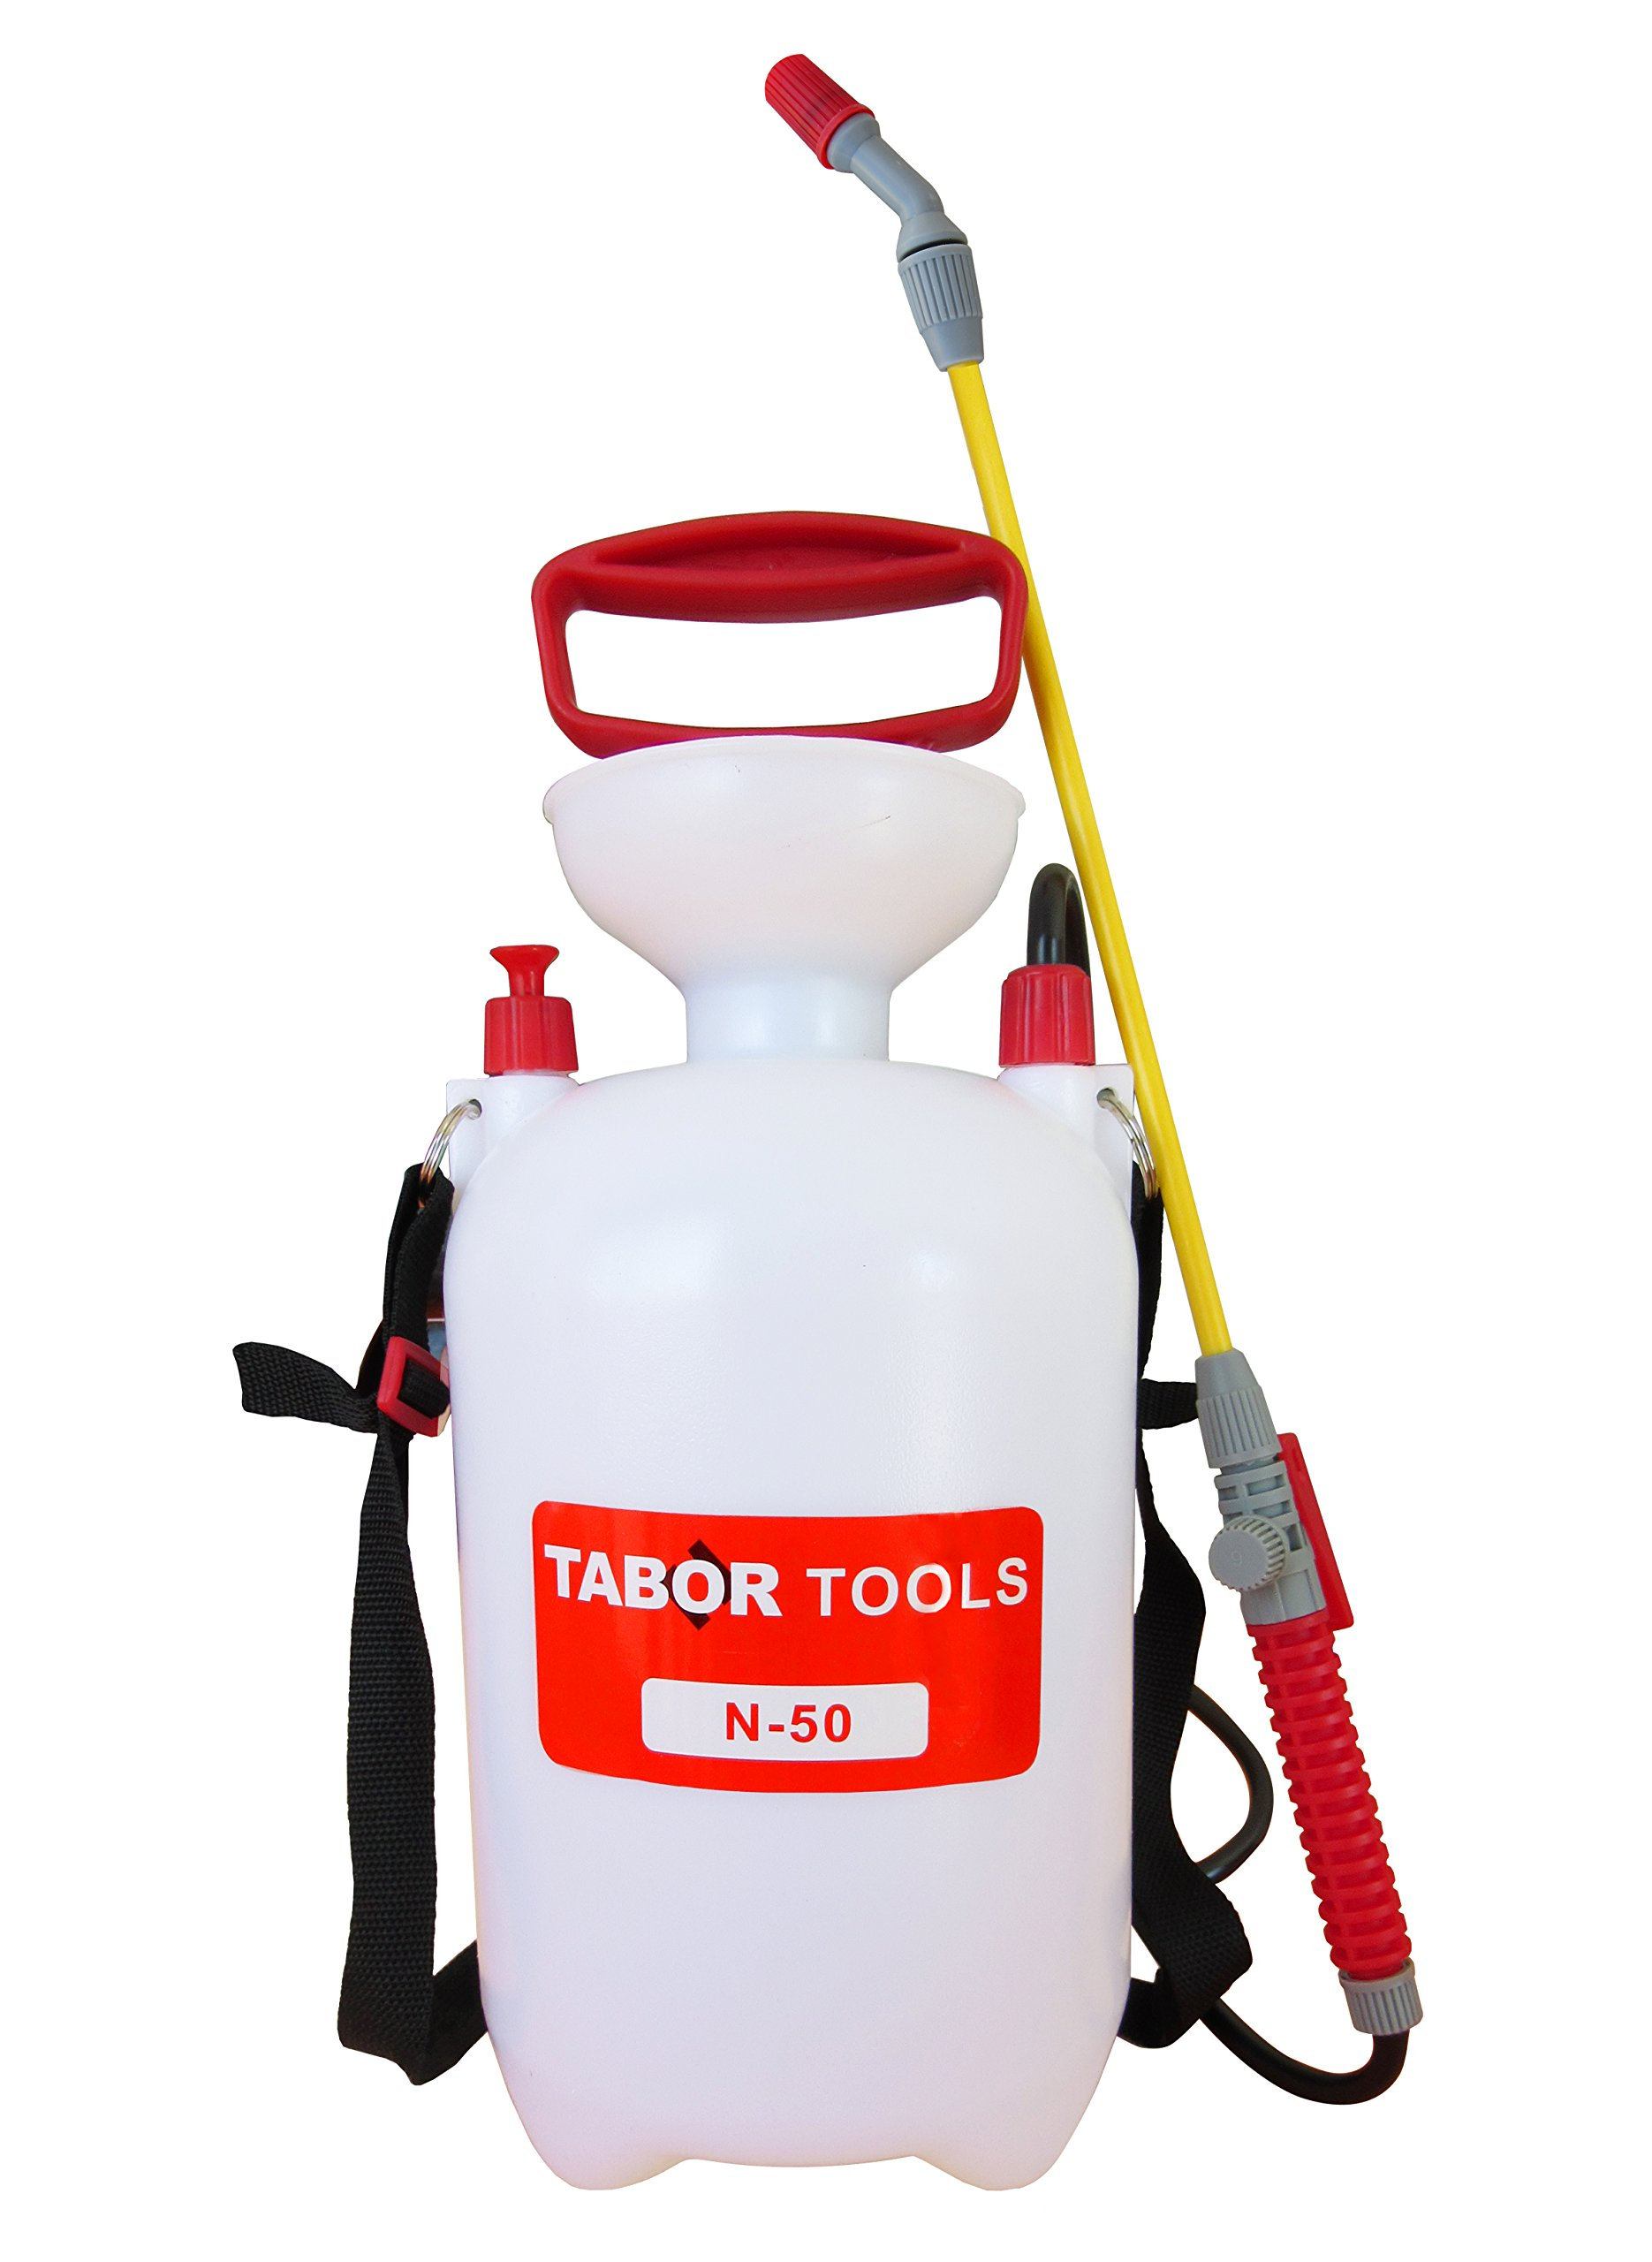 TABOR TOOLS Lawn and Garden Pump Pressure Sprayer for Herbicides, Fertilizers, Mild Cleaning Solutions and Bleach, Includes Shoulder Strap.N-50. (1.3 Gallon) by TABOR TOOLS